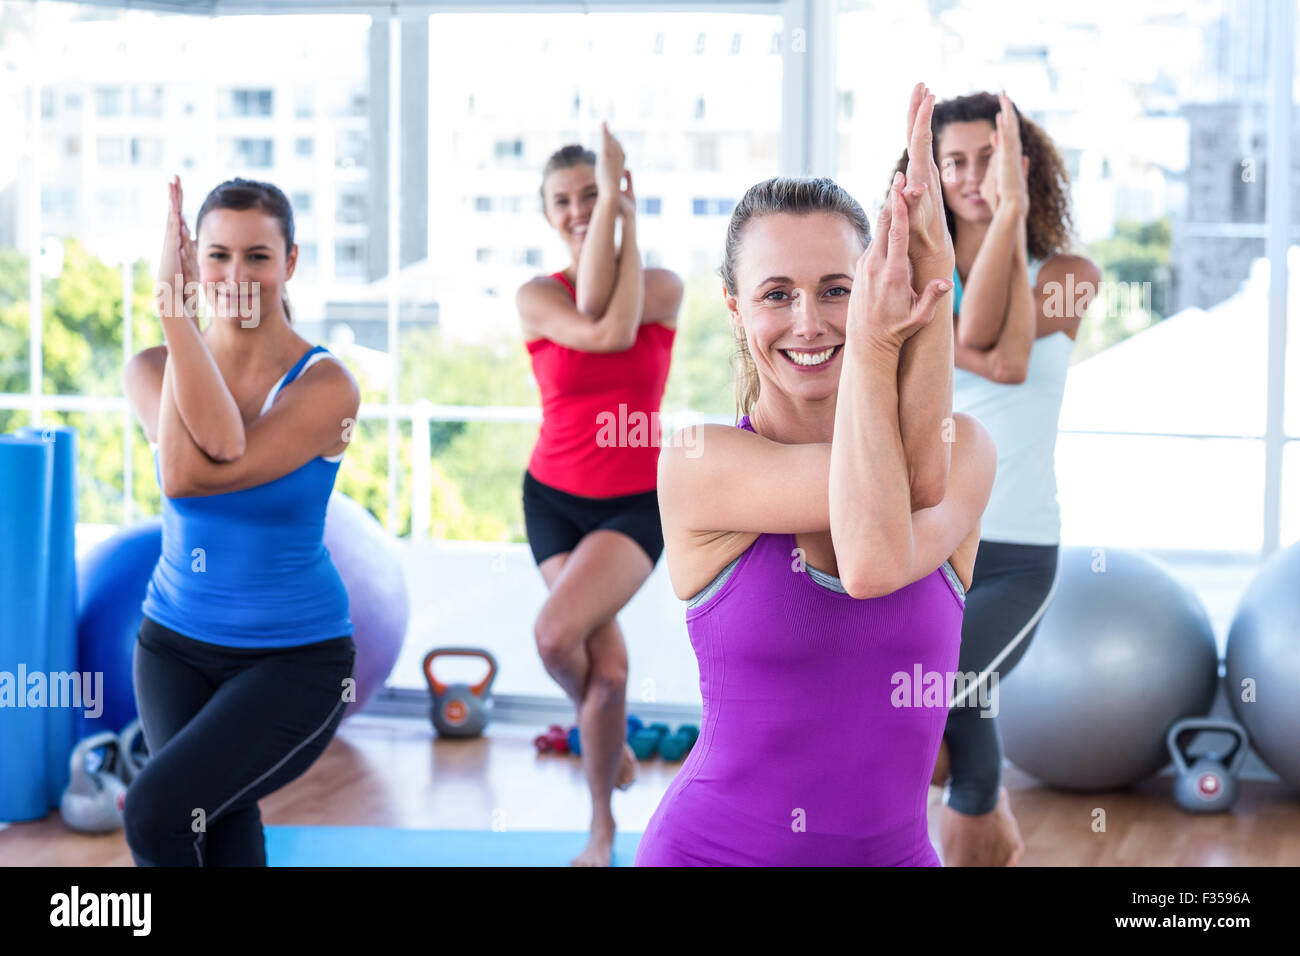 Attractive women doing eagle pose - Stock Image